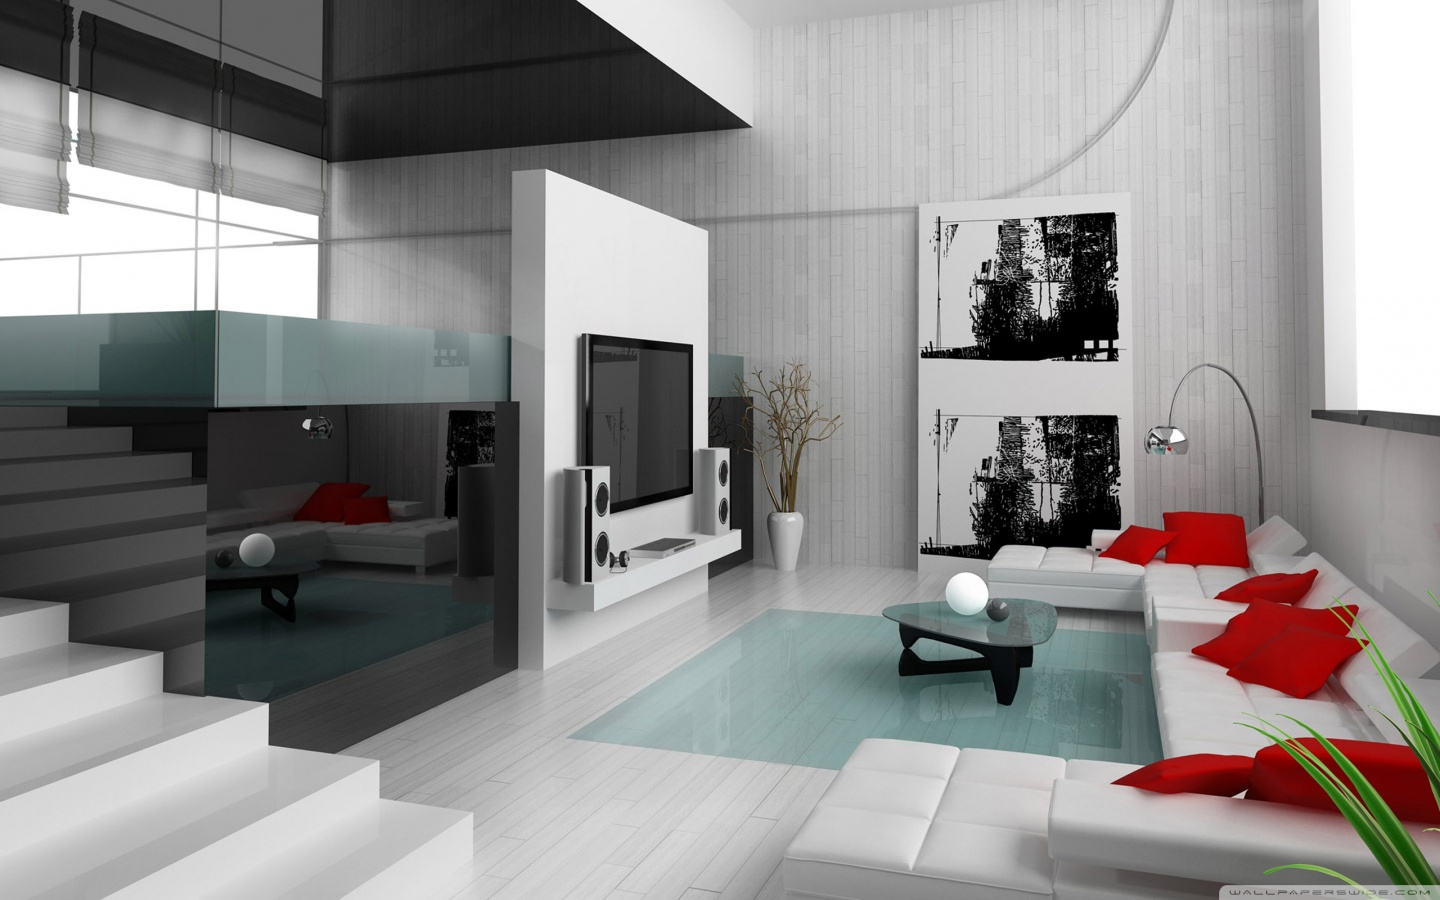 Minimalist interior design imagination art architecture for Modern architecture interior